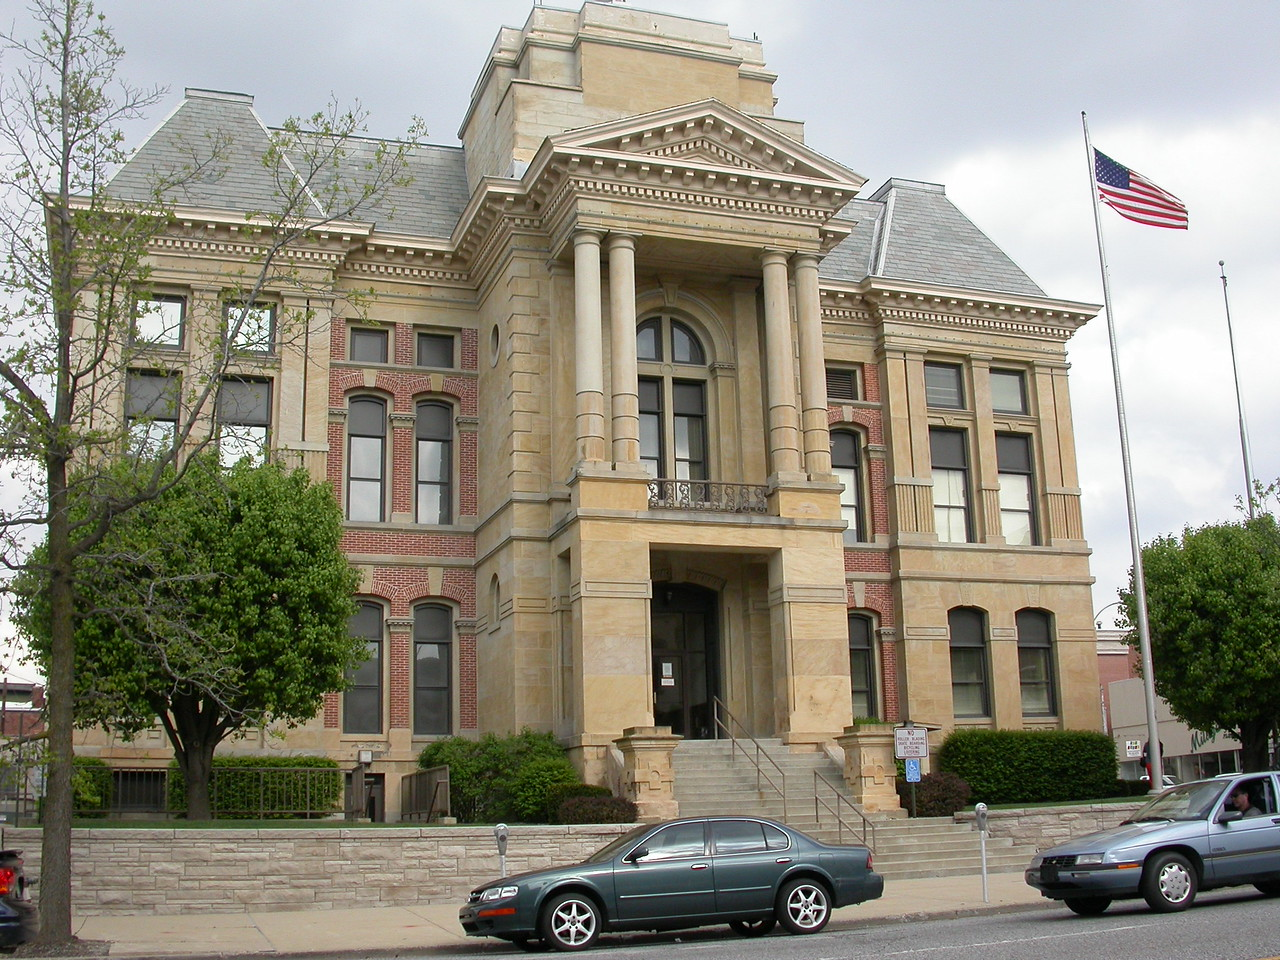 Montgomery County Courthouse, Crawfordsville, Indiana, April 2004.